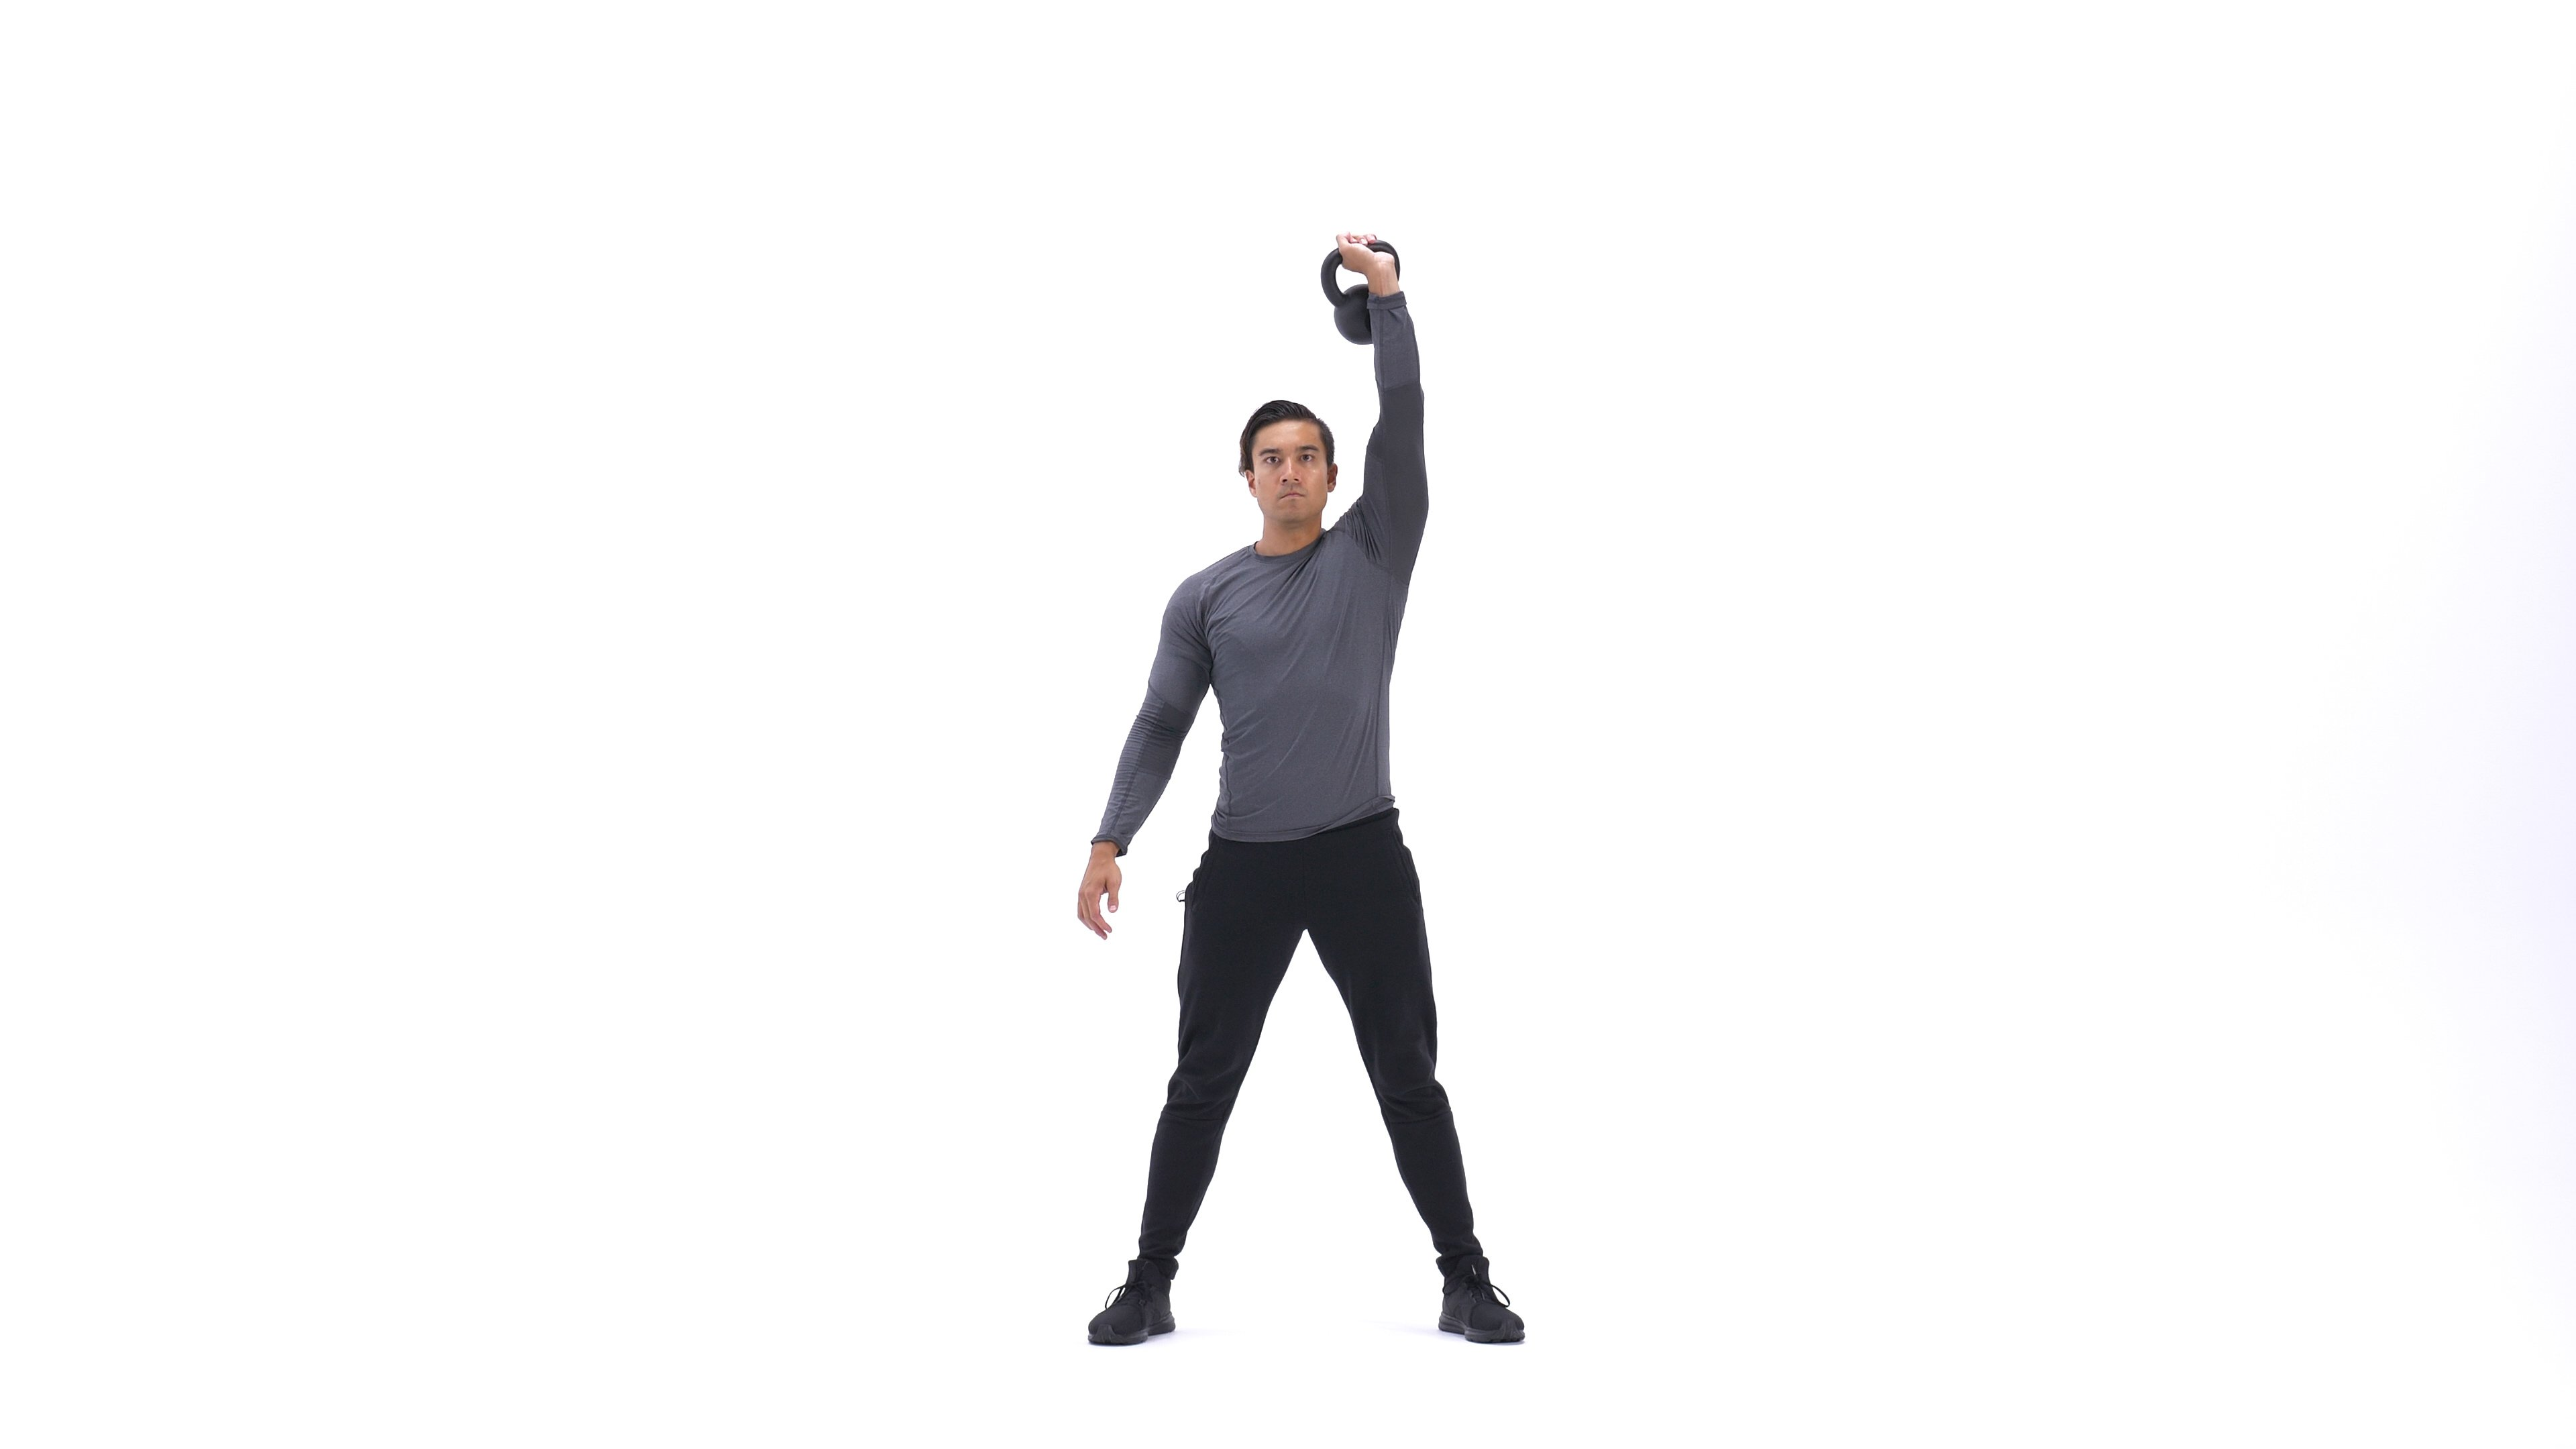 One-Arm Overhead Kettlebell Squats image